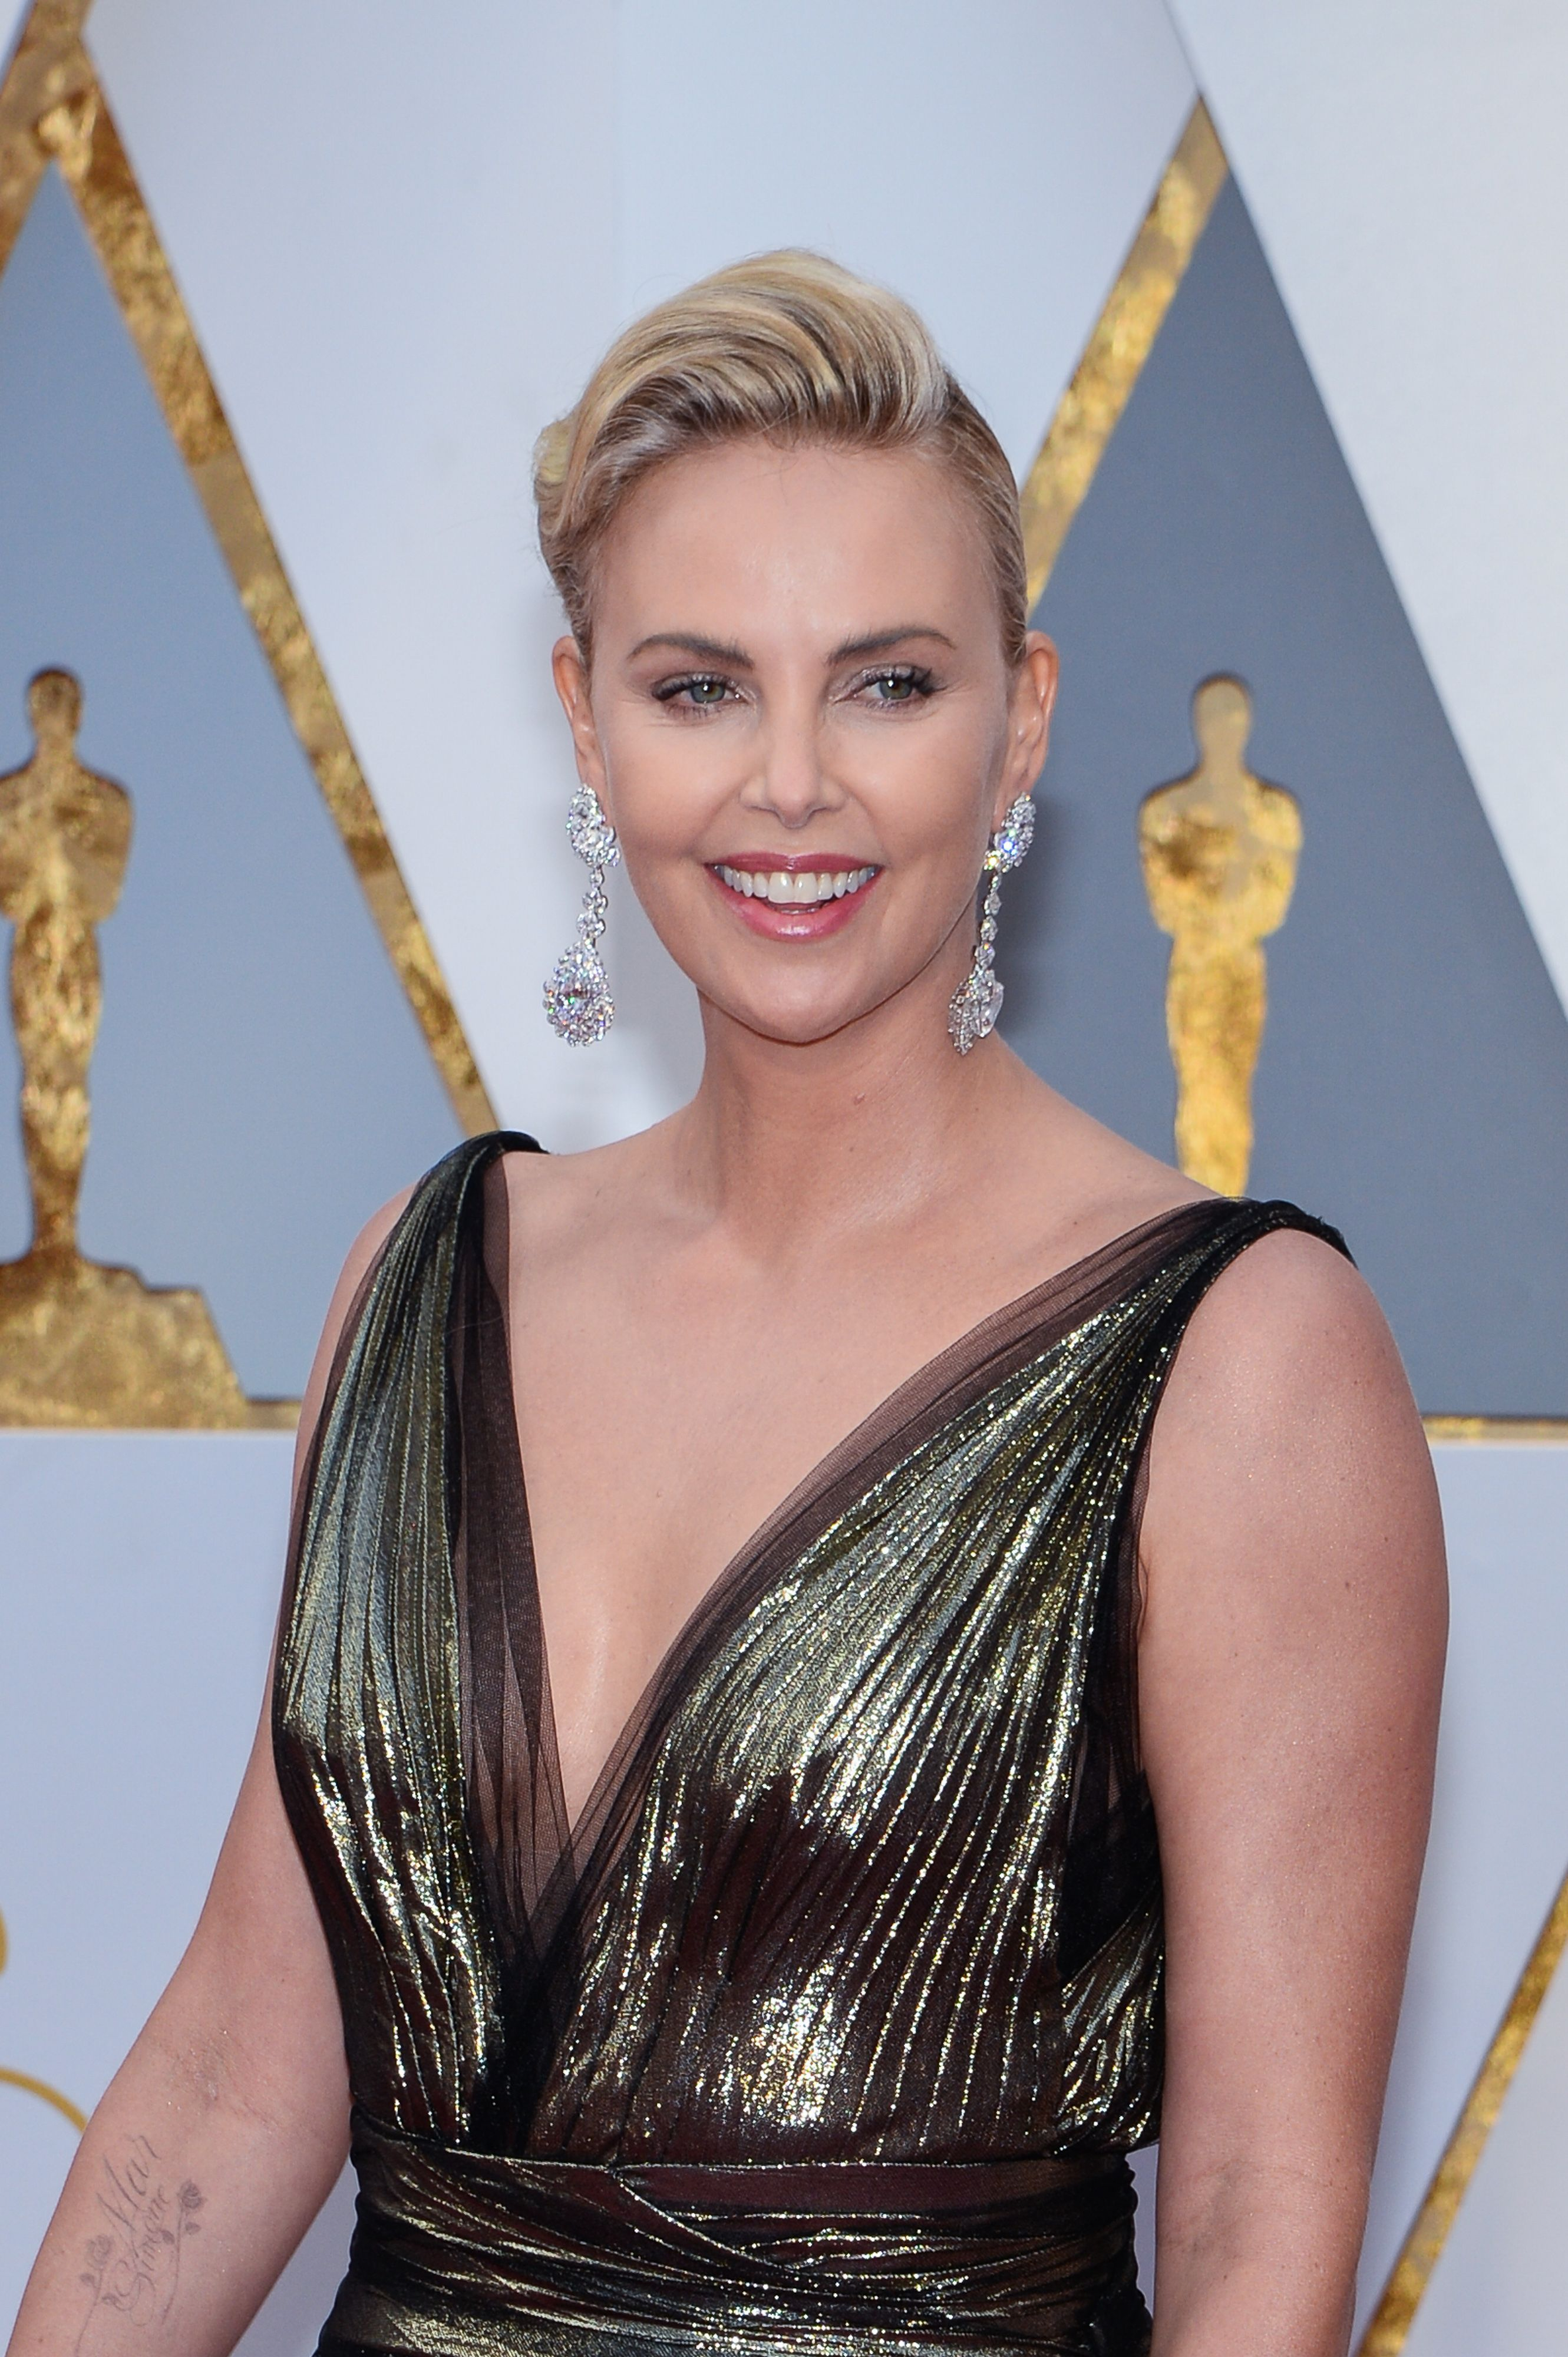 Nude pictures of charlize theron